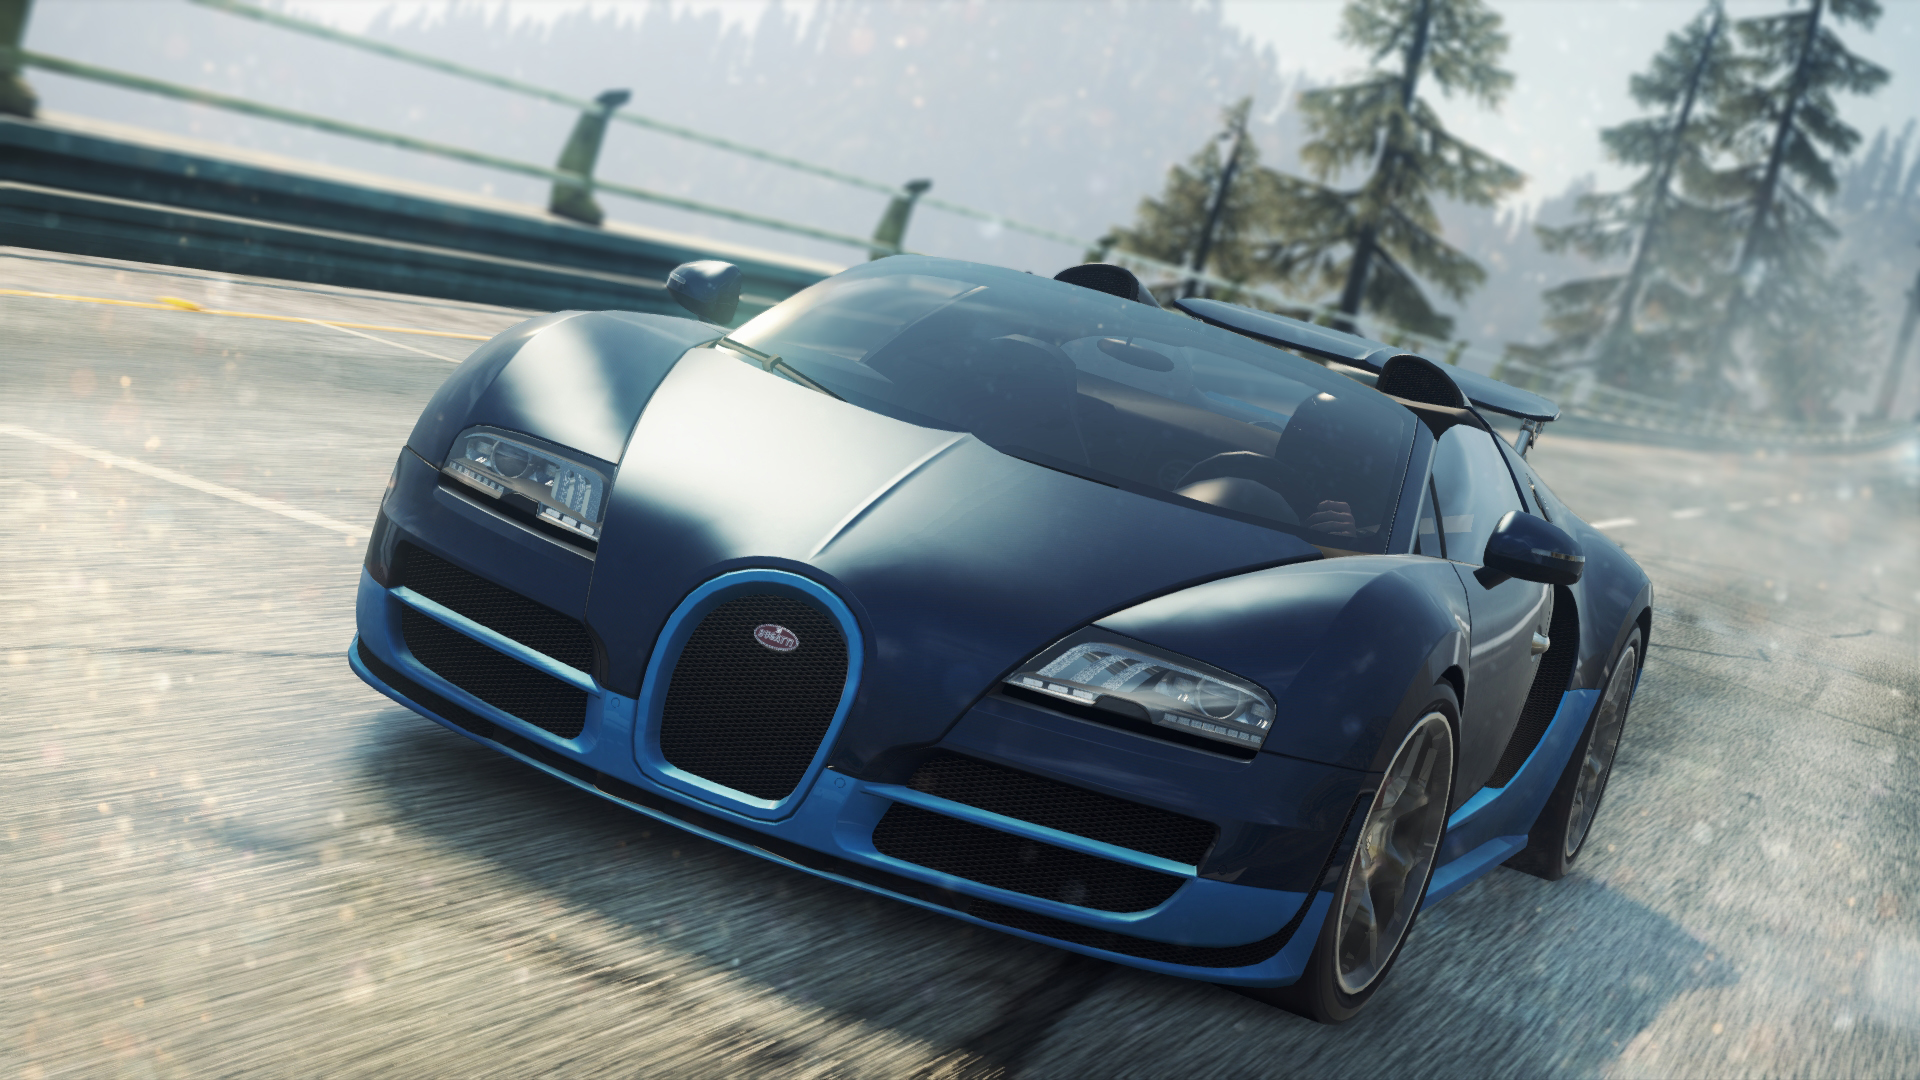 bugatti veyron grand sport vitesse need for speed wiki. Black Bedroom Furniture Sets. Home Design Ideas